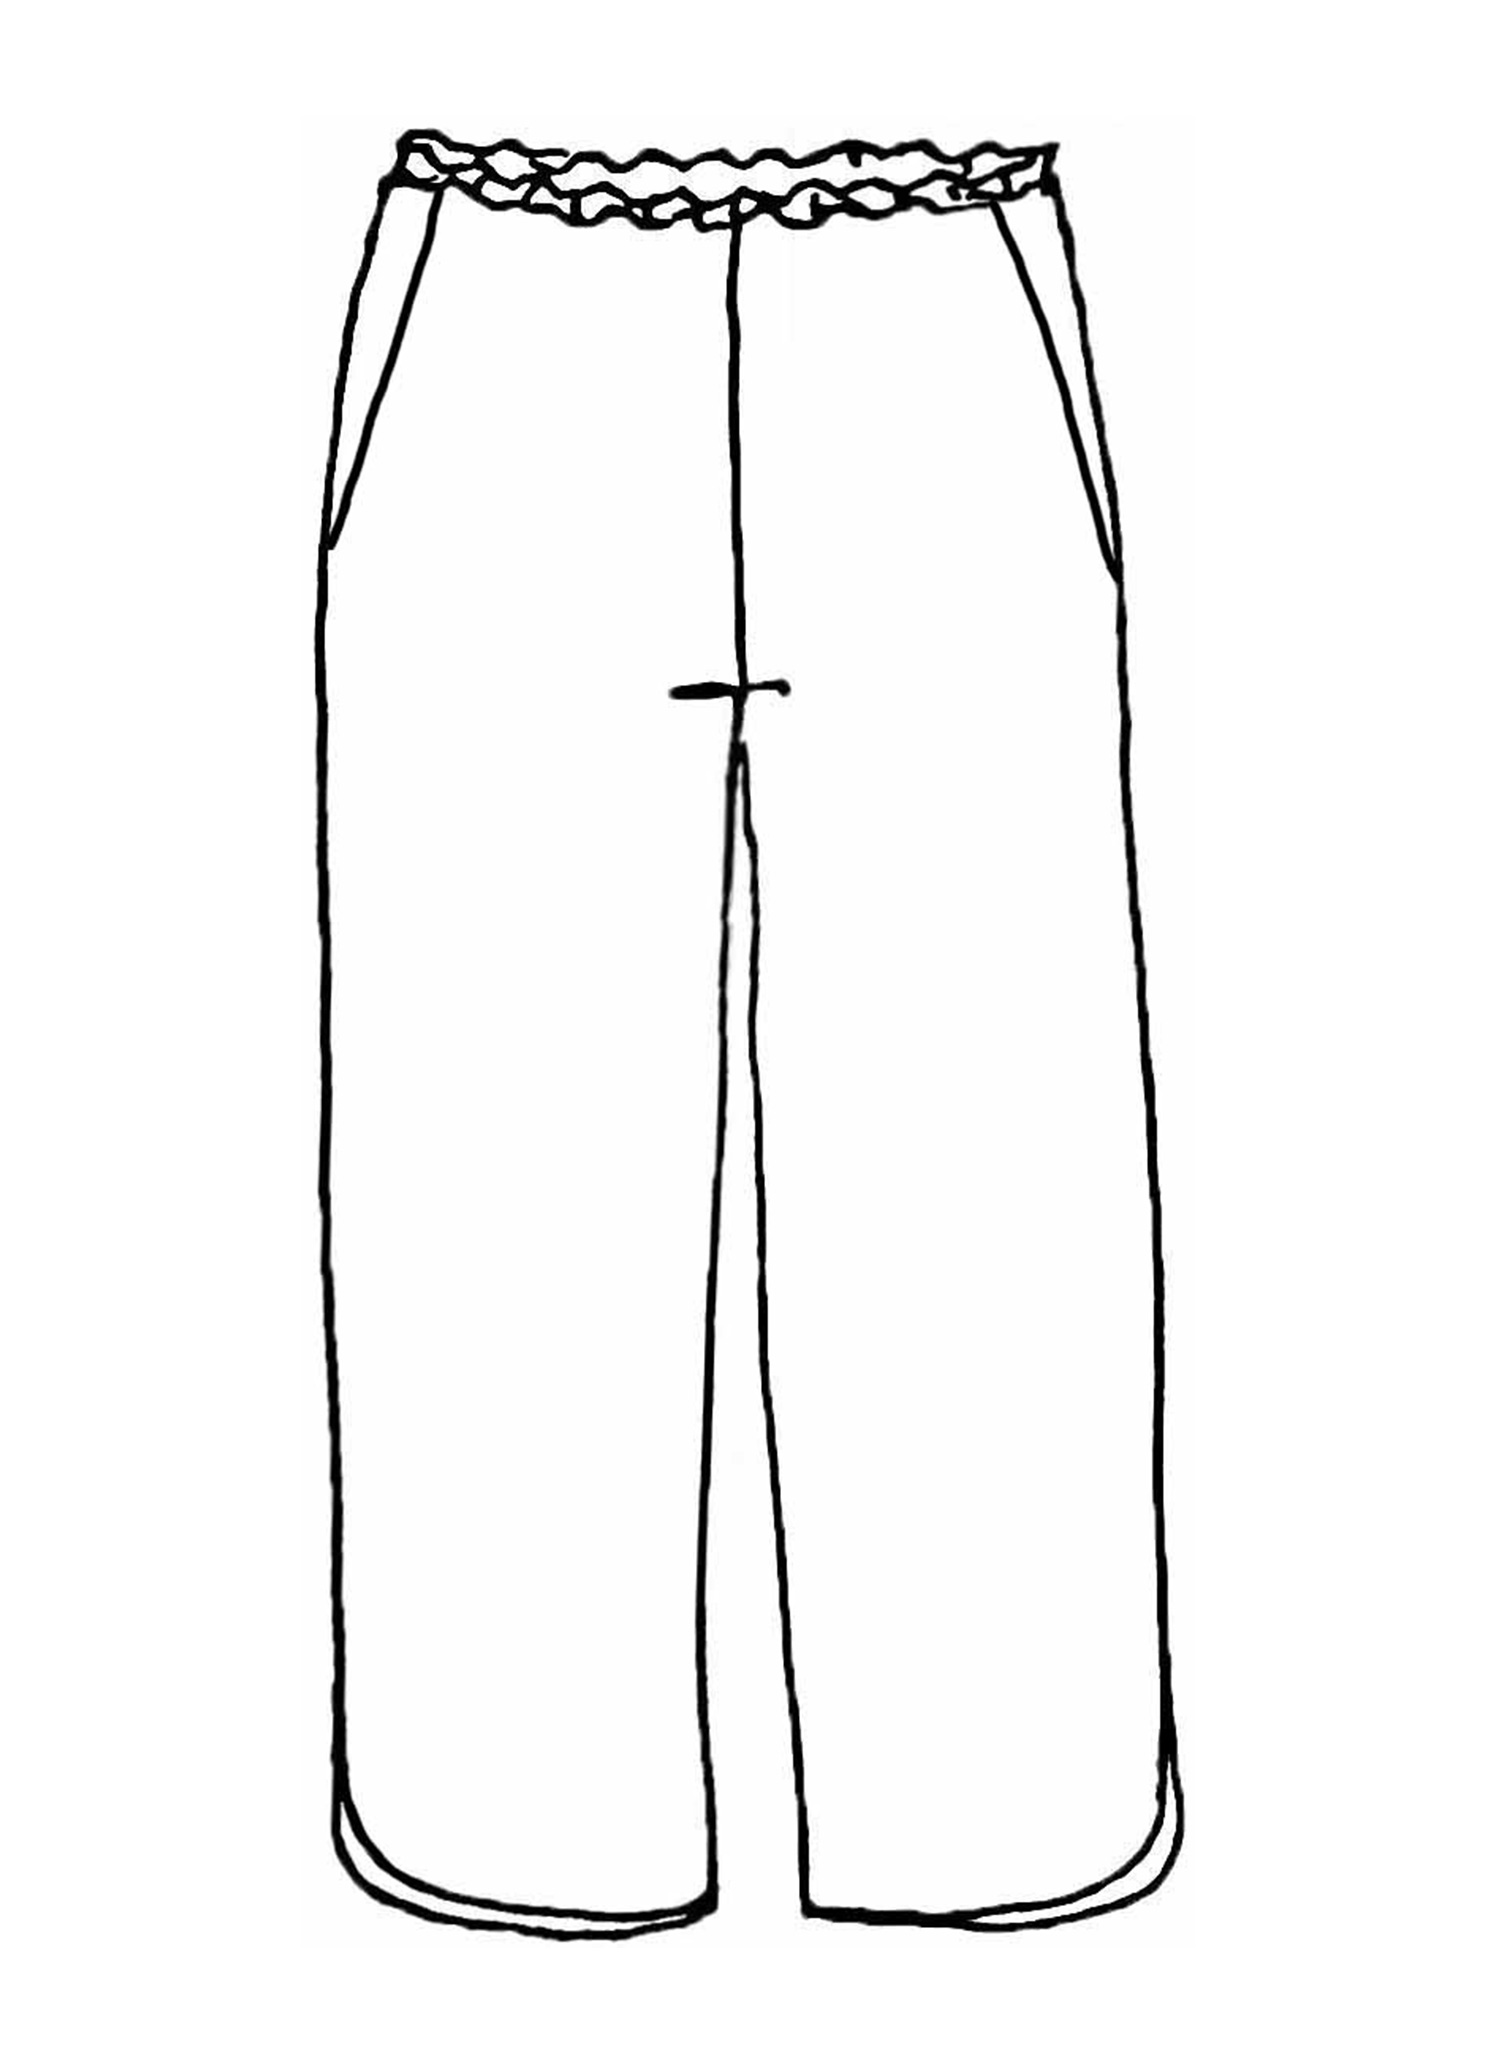 Shirttail Crop sketch image